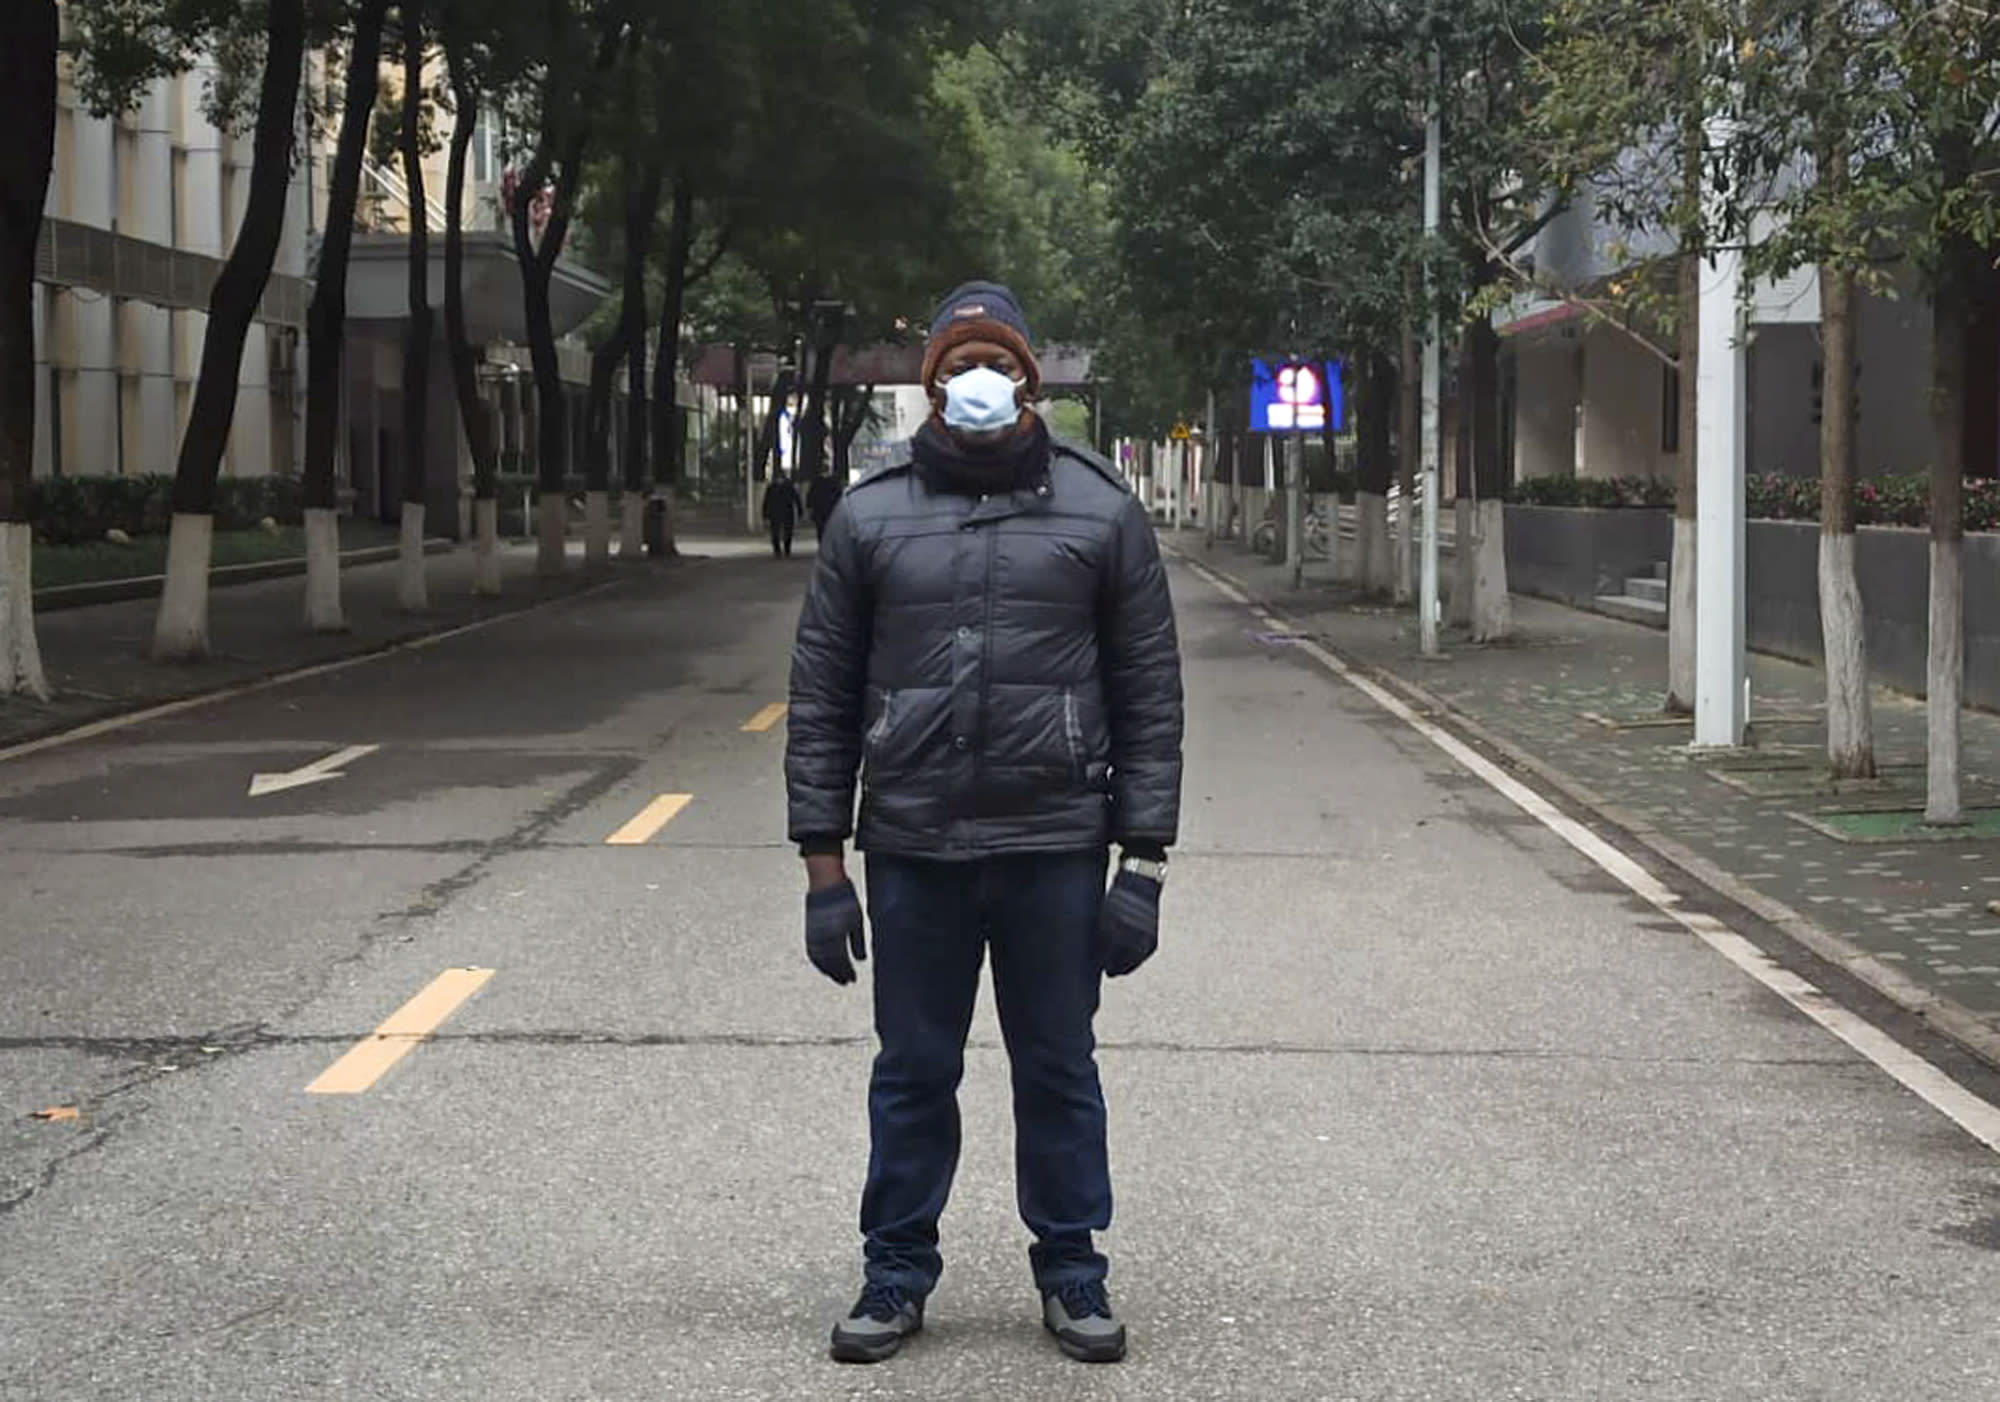 This Jan. 27, 2020, photo, provided by Dr. Khamis Hassan Bakari of Tanzania, shows him posing for a photo in Wuhan, China. Bakari is among more than 4,000 African students in the Chinese city of 11 million people, and has been sending updates on social media about the outbreak of a new virus to the more than 400 other Tanzanian students in Wuhan, as China's astonishing lockdown of more than 30 million people continues. (Khamis Hassan Bakari via AP)